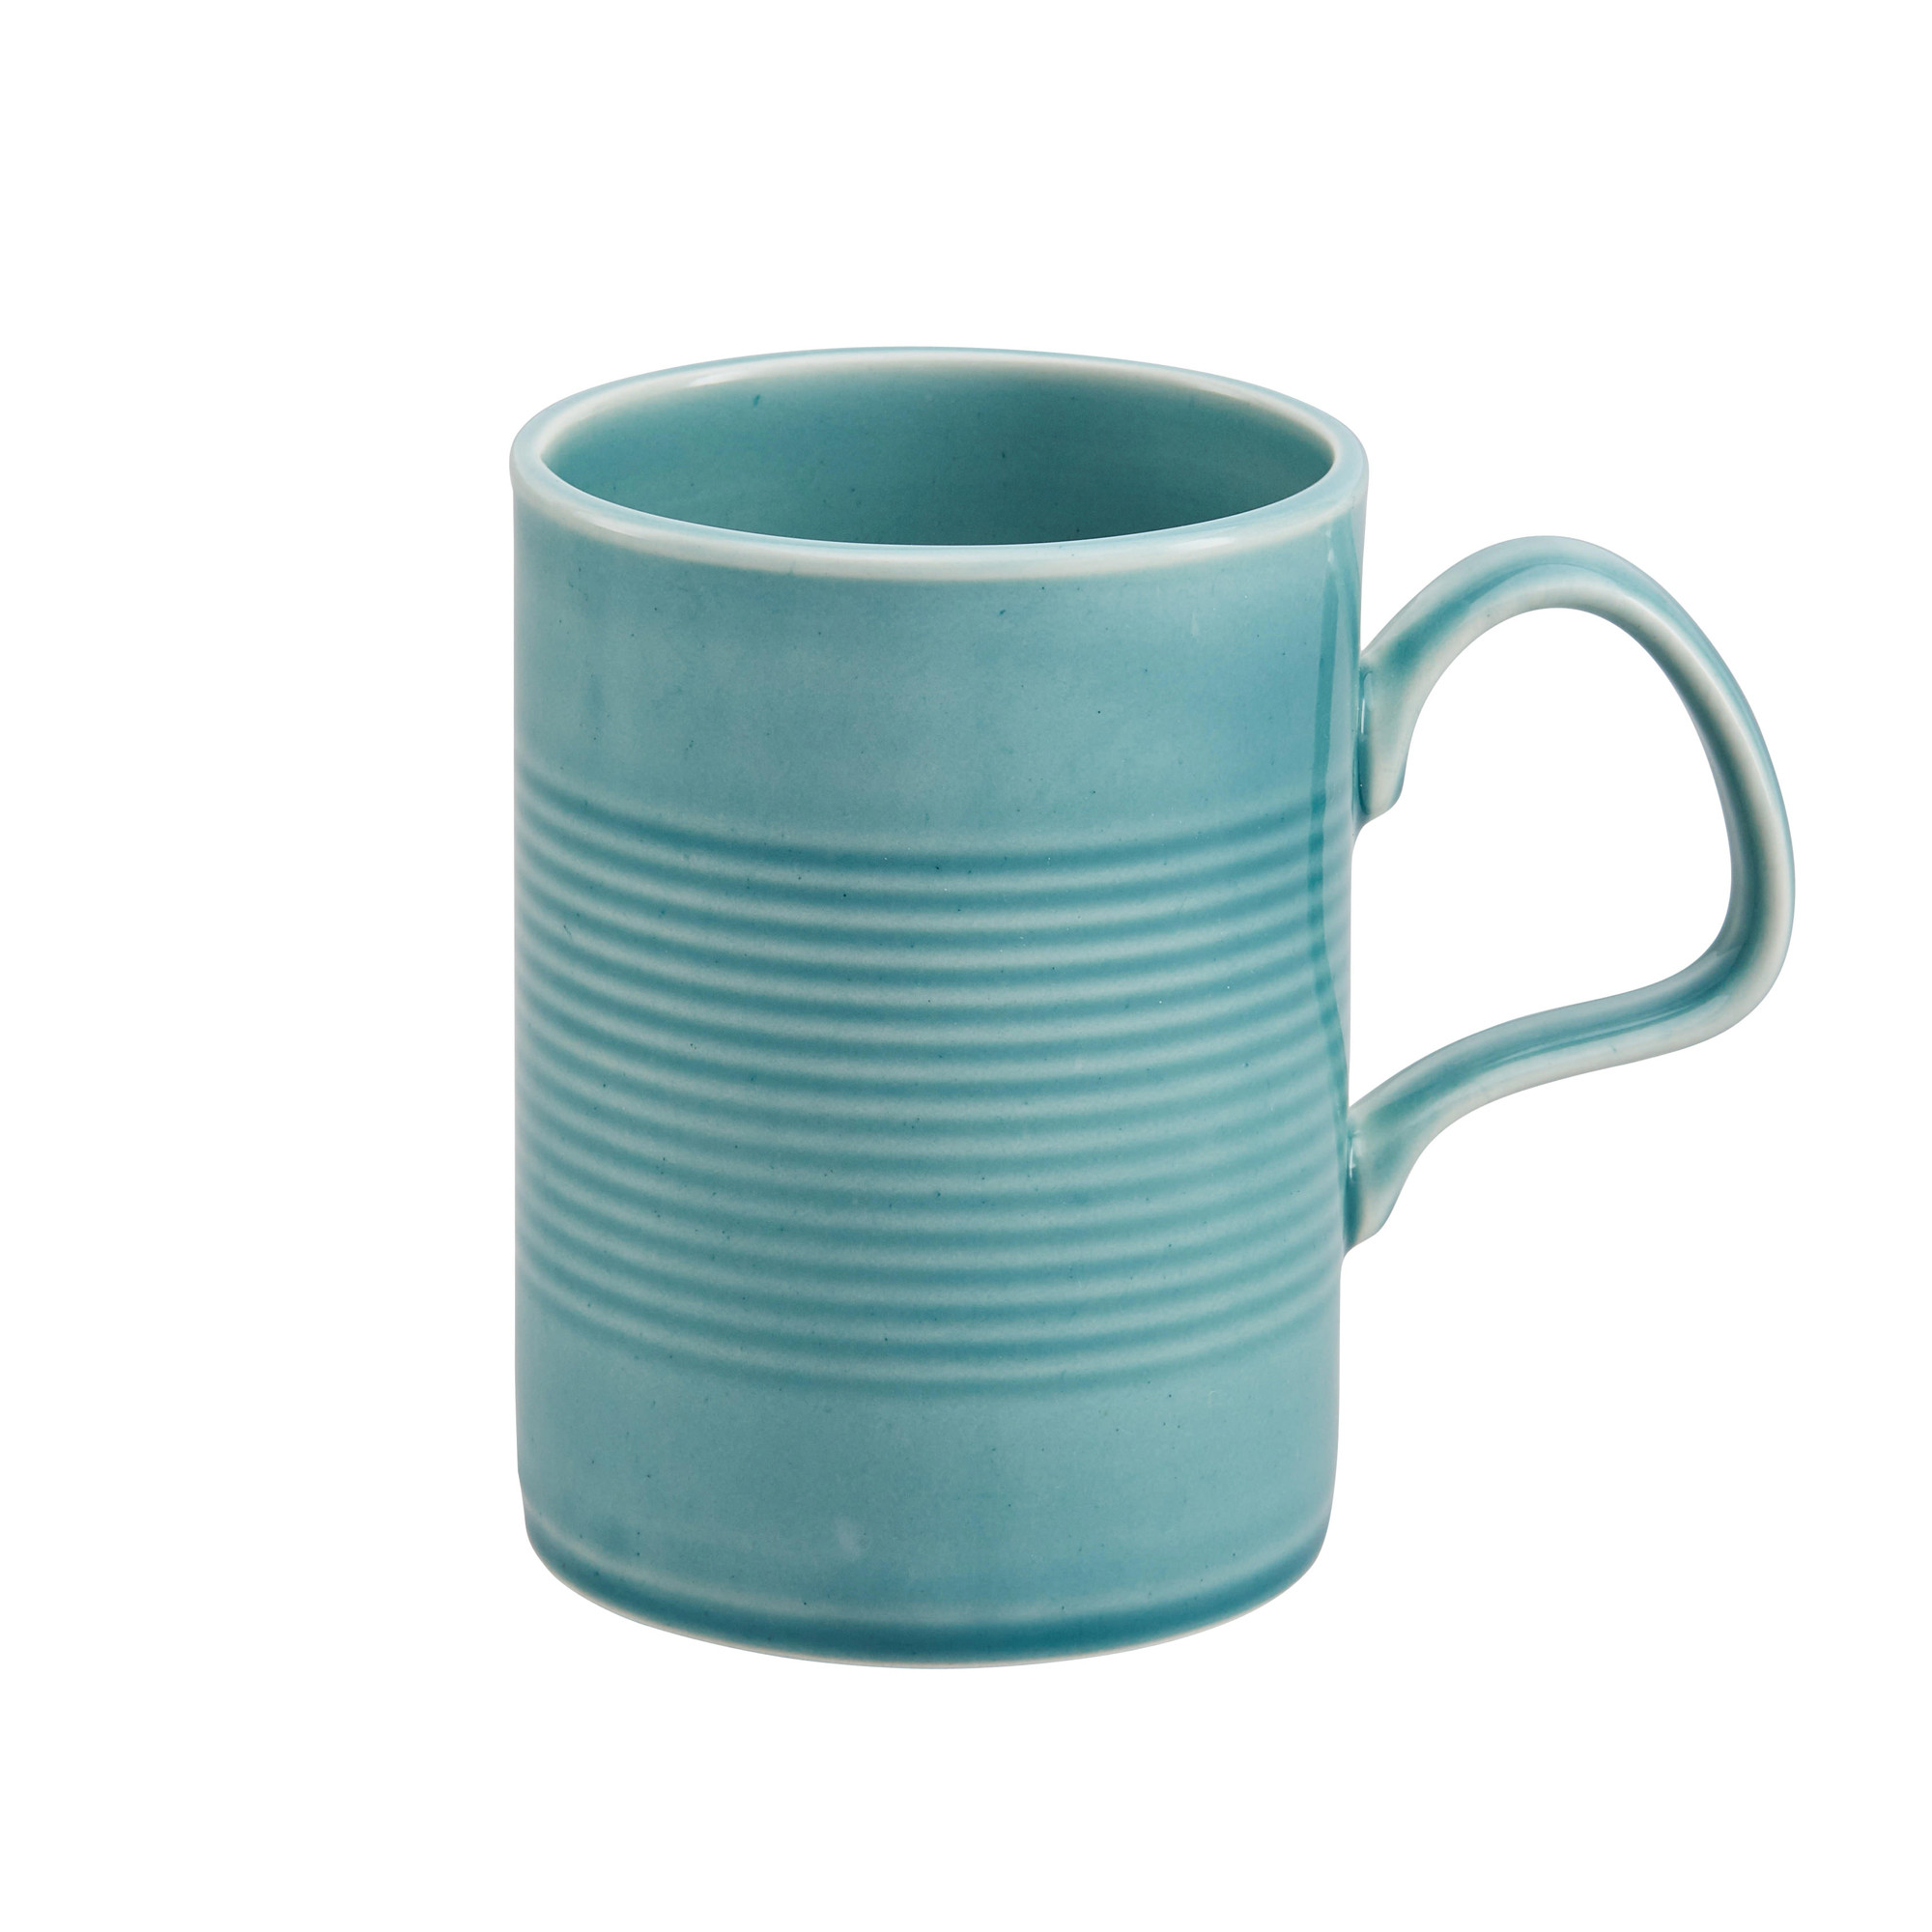 "<span class=""link fancybox-details-link""><a href=""/artists/37-stolen-form/works/1015-stolen-form-tin-can-mug-large-blue-2017/"">View Detail Page</a></span><div class=""artist""><strong>Stolen Form</strong></div> <div class=""title""><em>Tin Can Mug - Large - Blue</em>, 2017</div> <div class=""medium"">Ceramic</div> <div class=""dimensions"">10.5 x 7.5 x 12 cm</div> <div class=""edition_details""></div><div class=""price"">£12.00</div><div class=""copyright_line"">Copyright The Artist</div>"